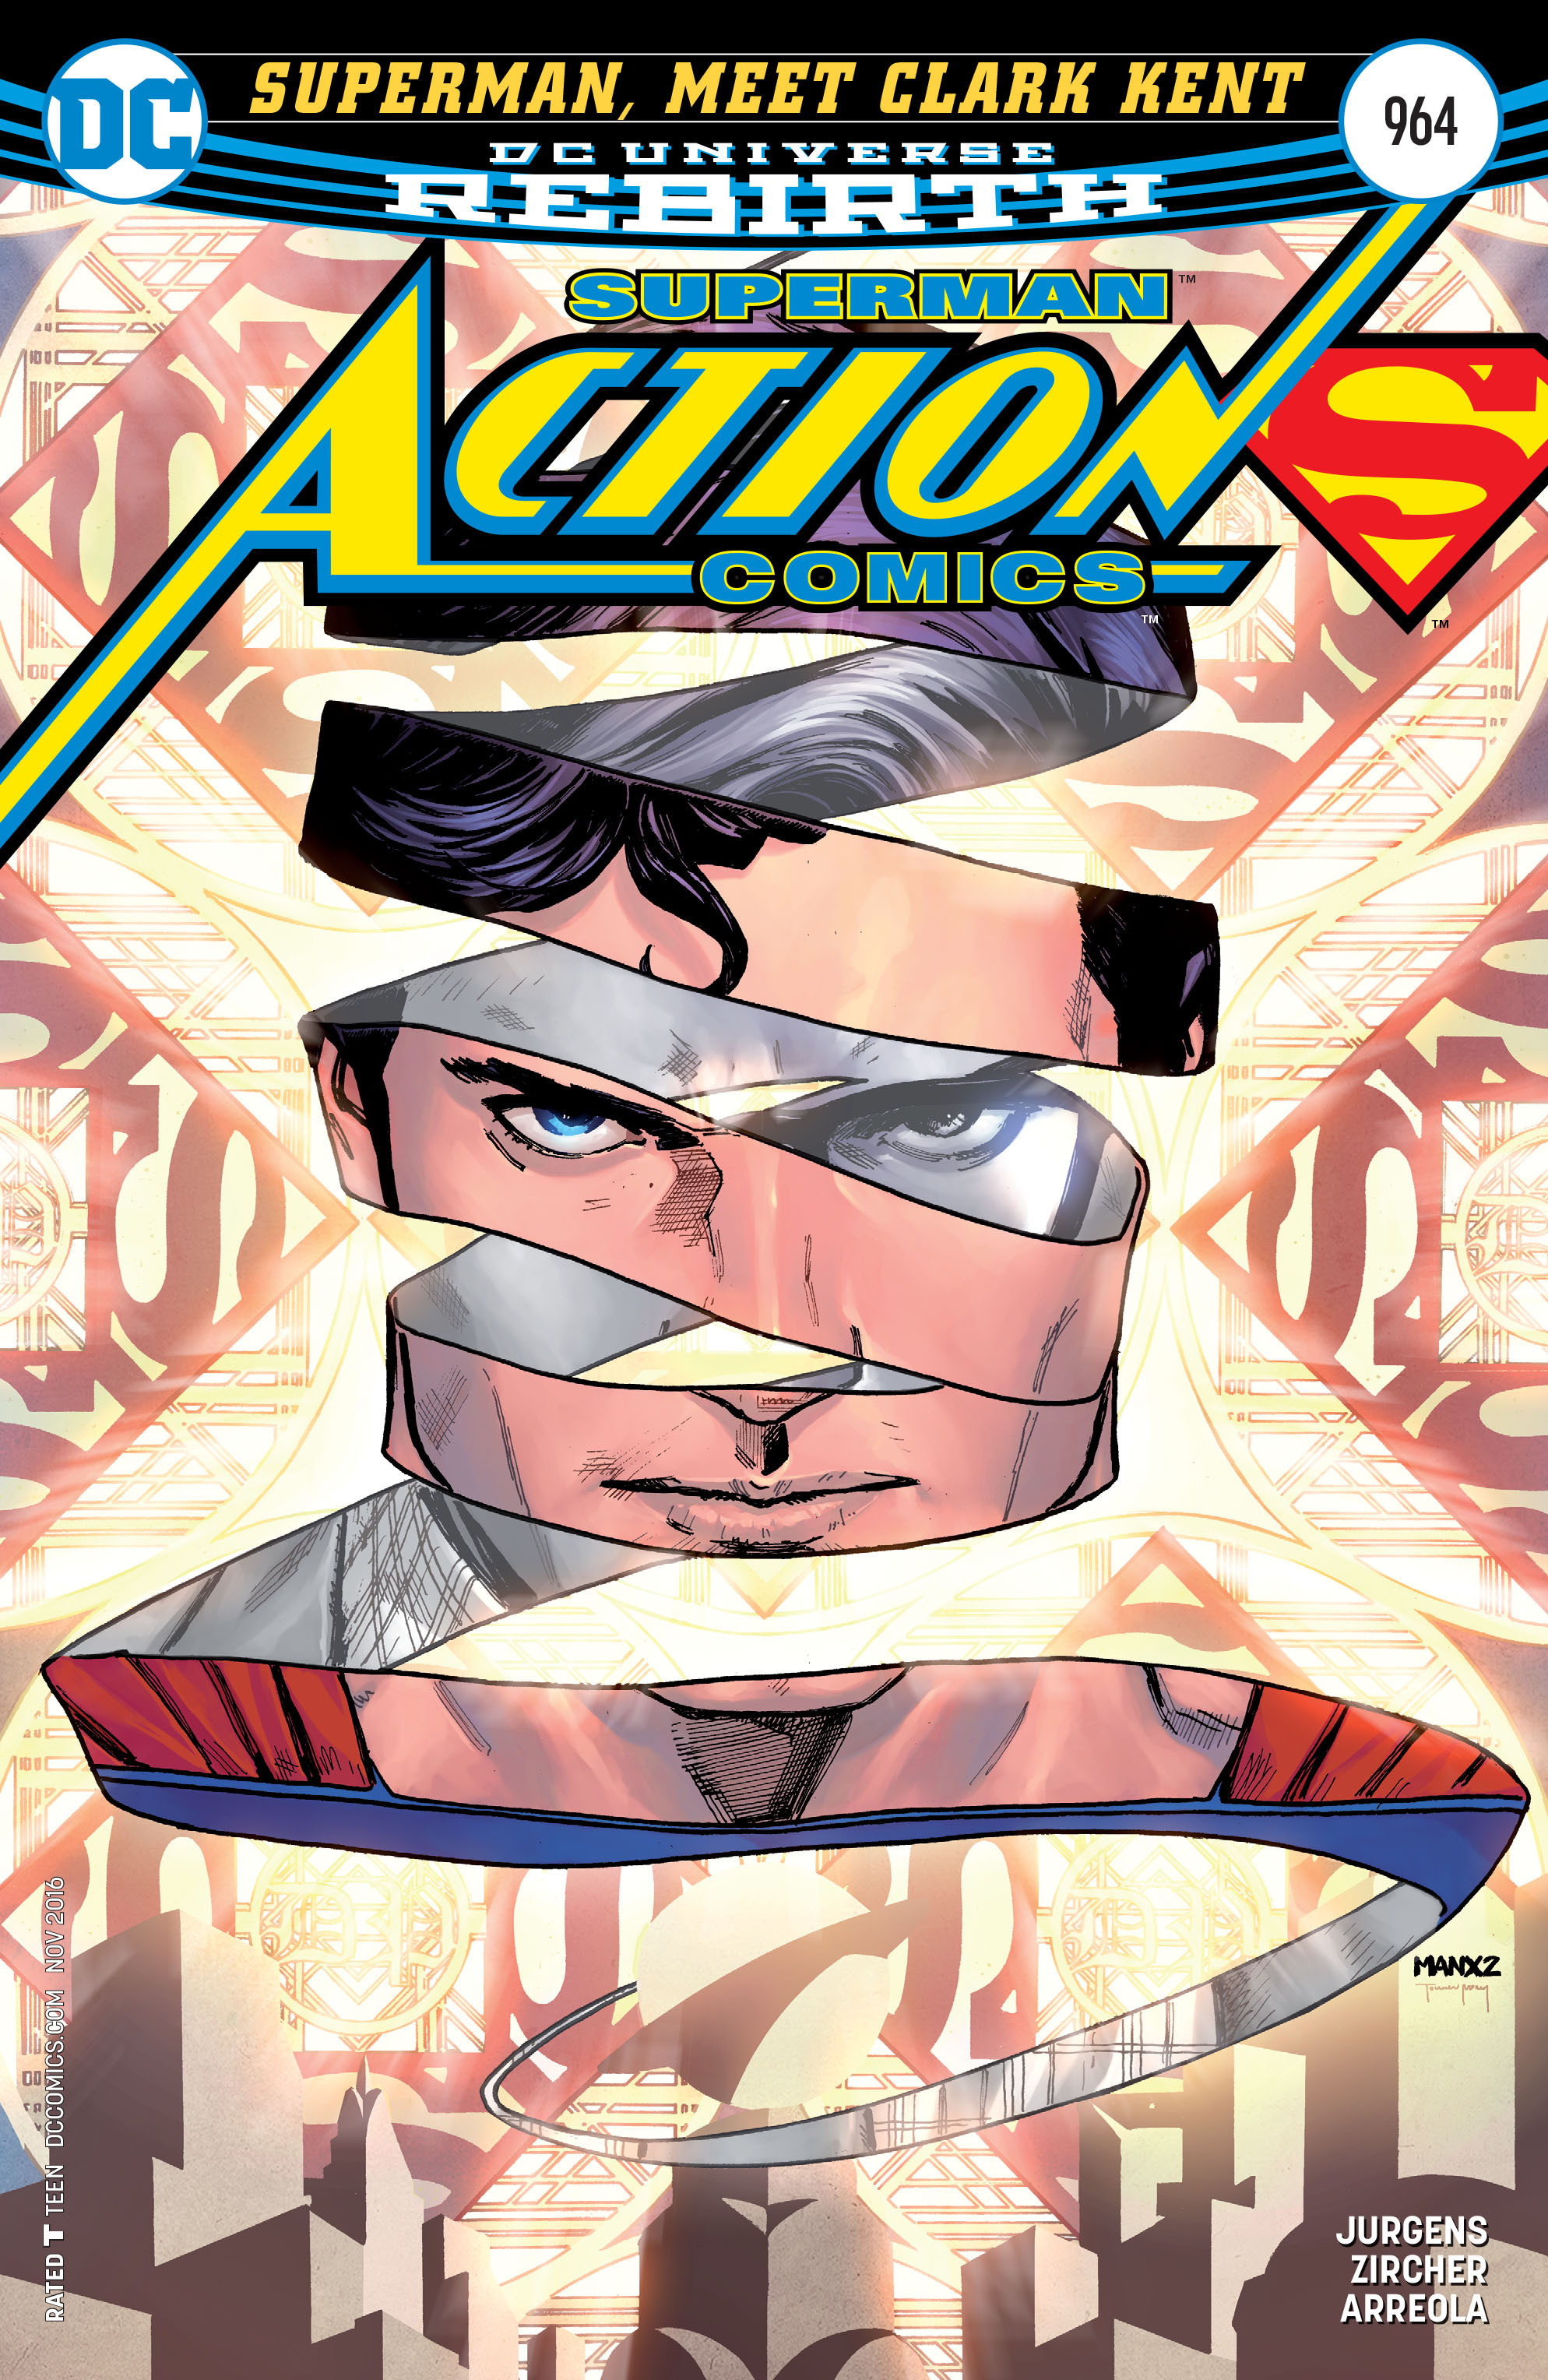 Read online Action Comics (2016) comic -  Issue #964 - 1